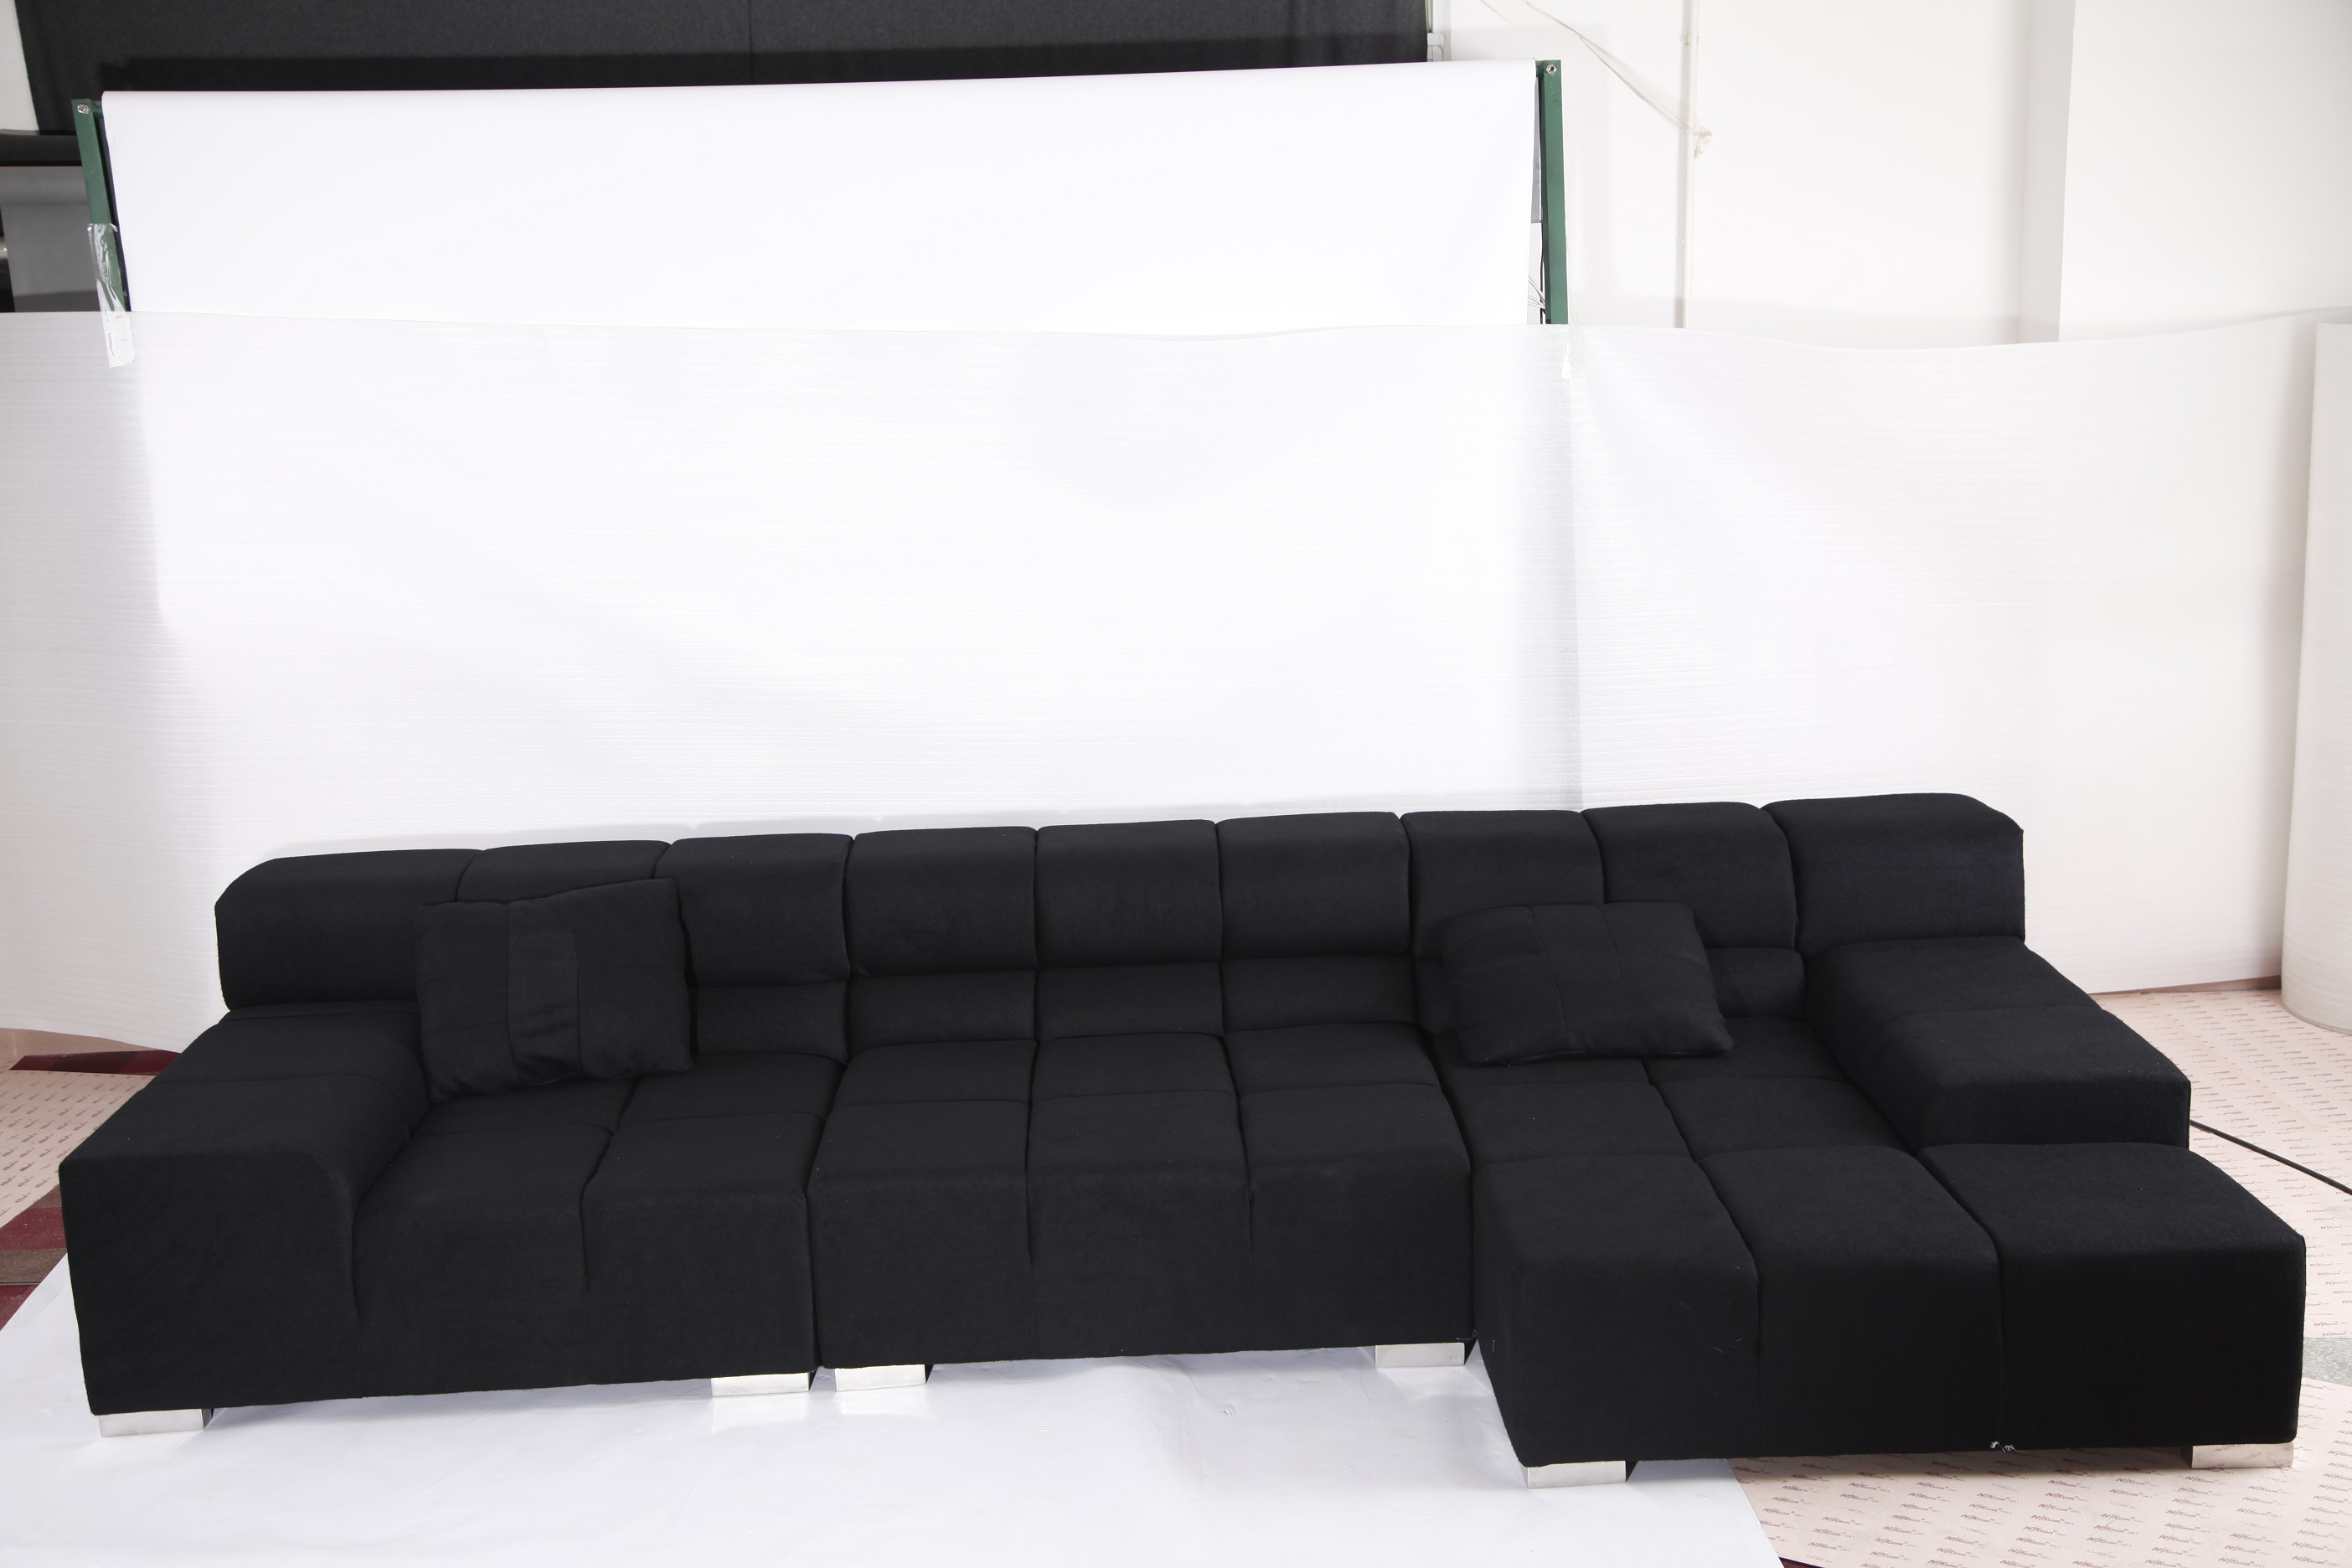 Tufty time sofa reproduction